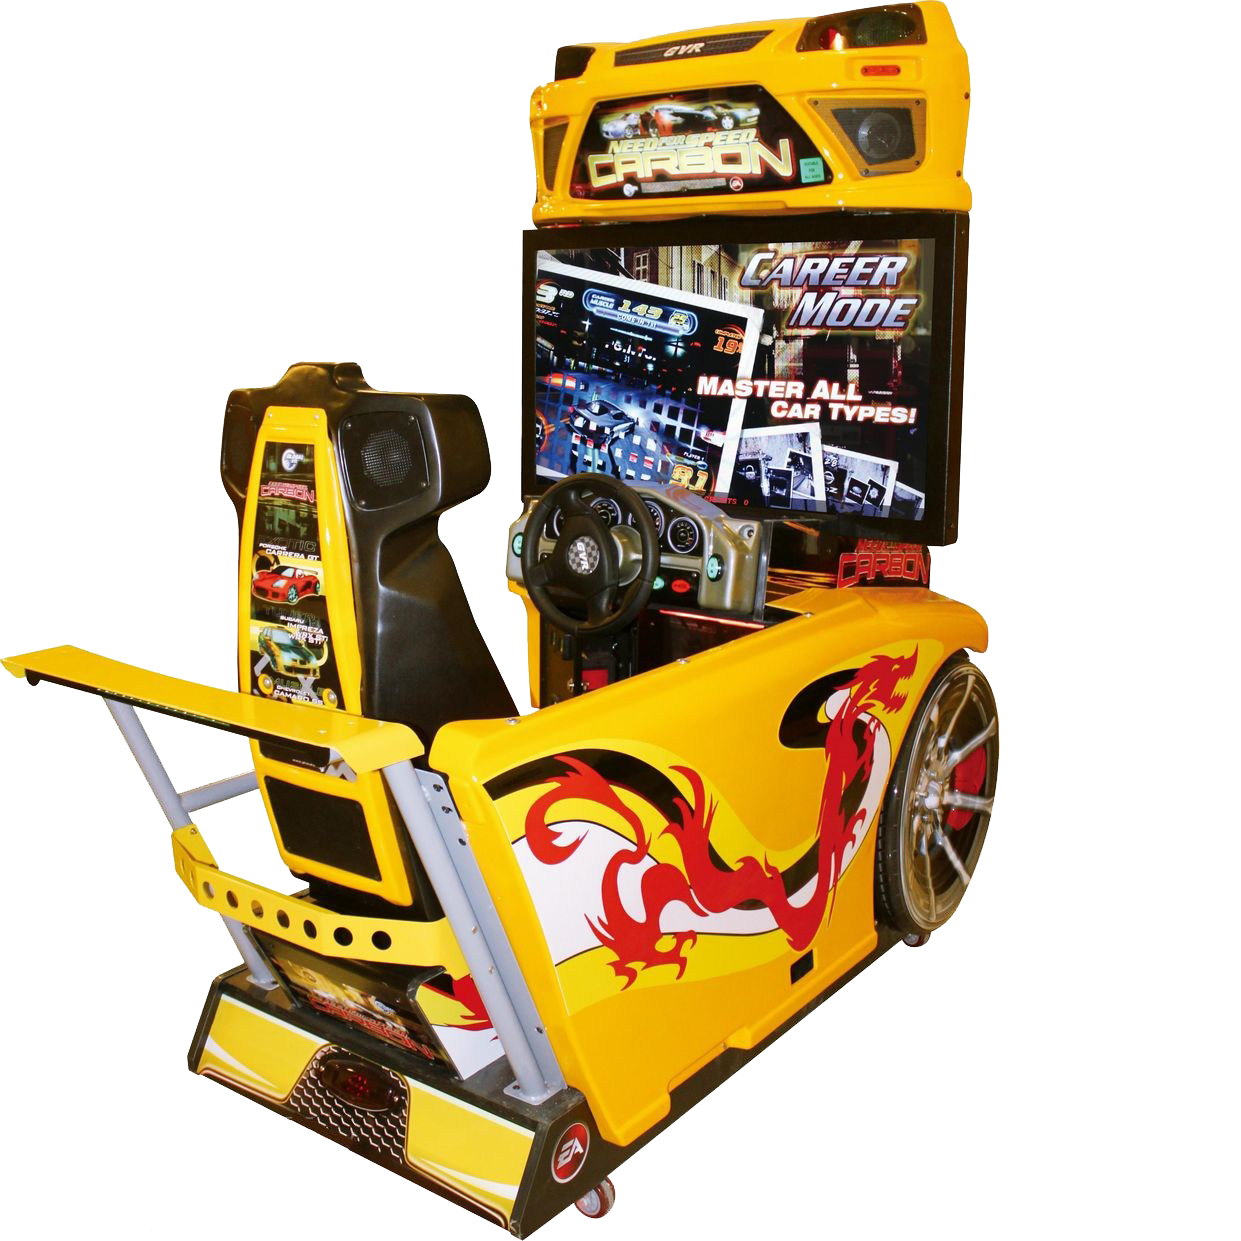 Dinibao NFS need for speed simulator arcade coin operated driving racing car game machine